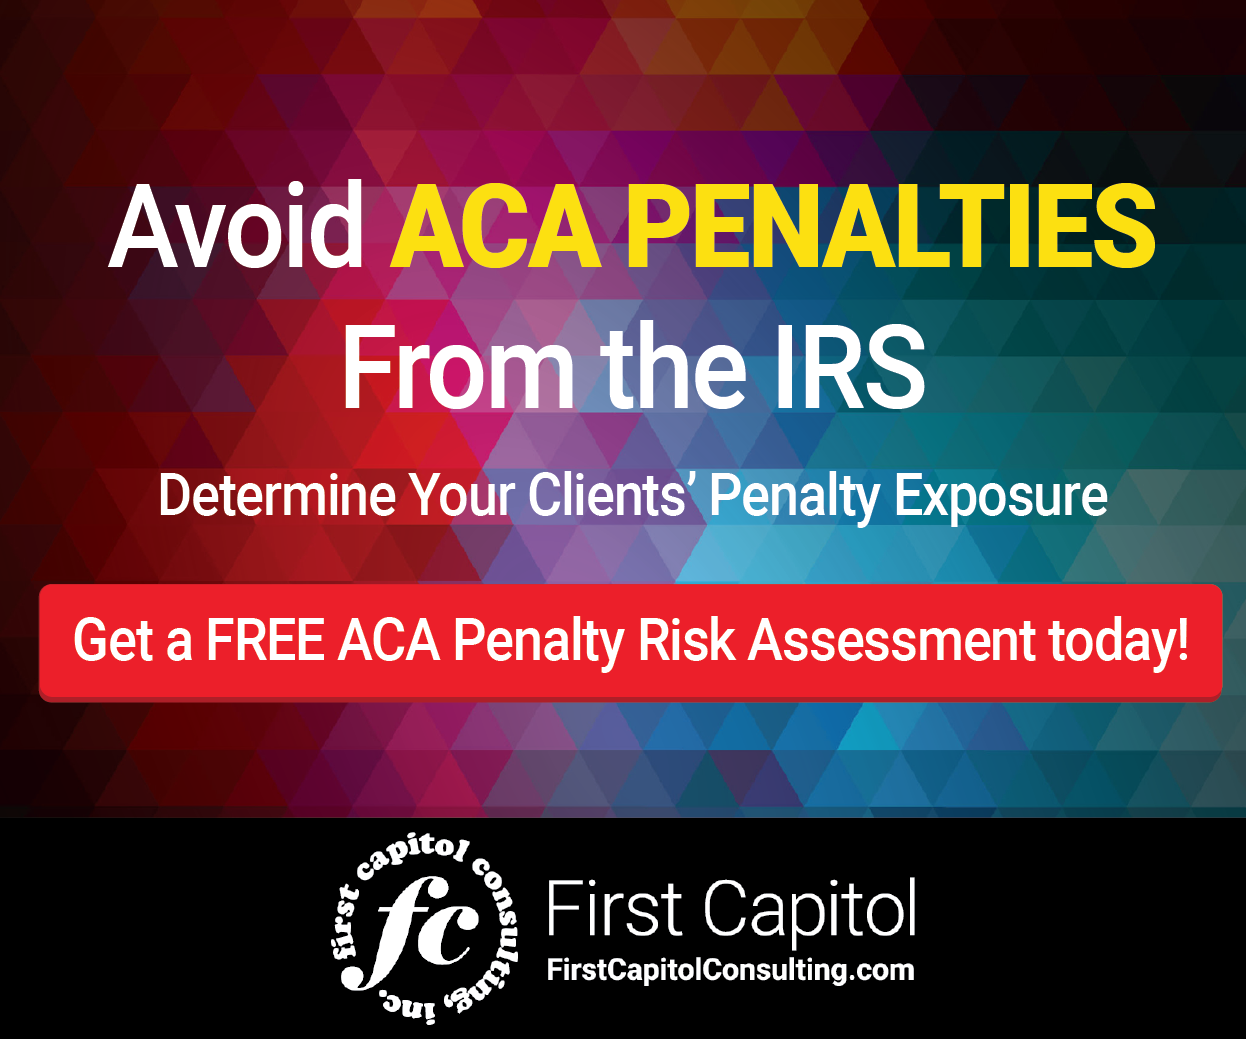 Avoid ACA Penalties From the IRS